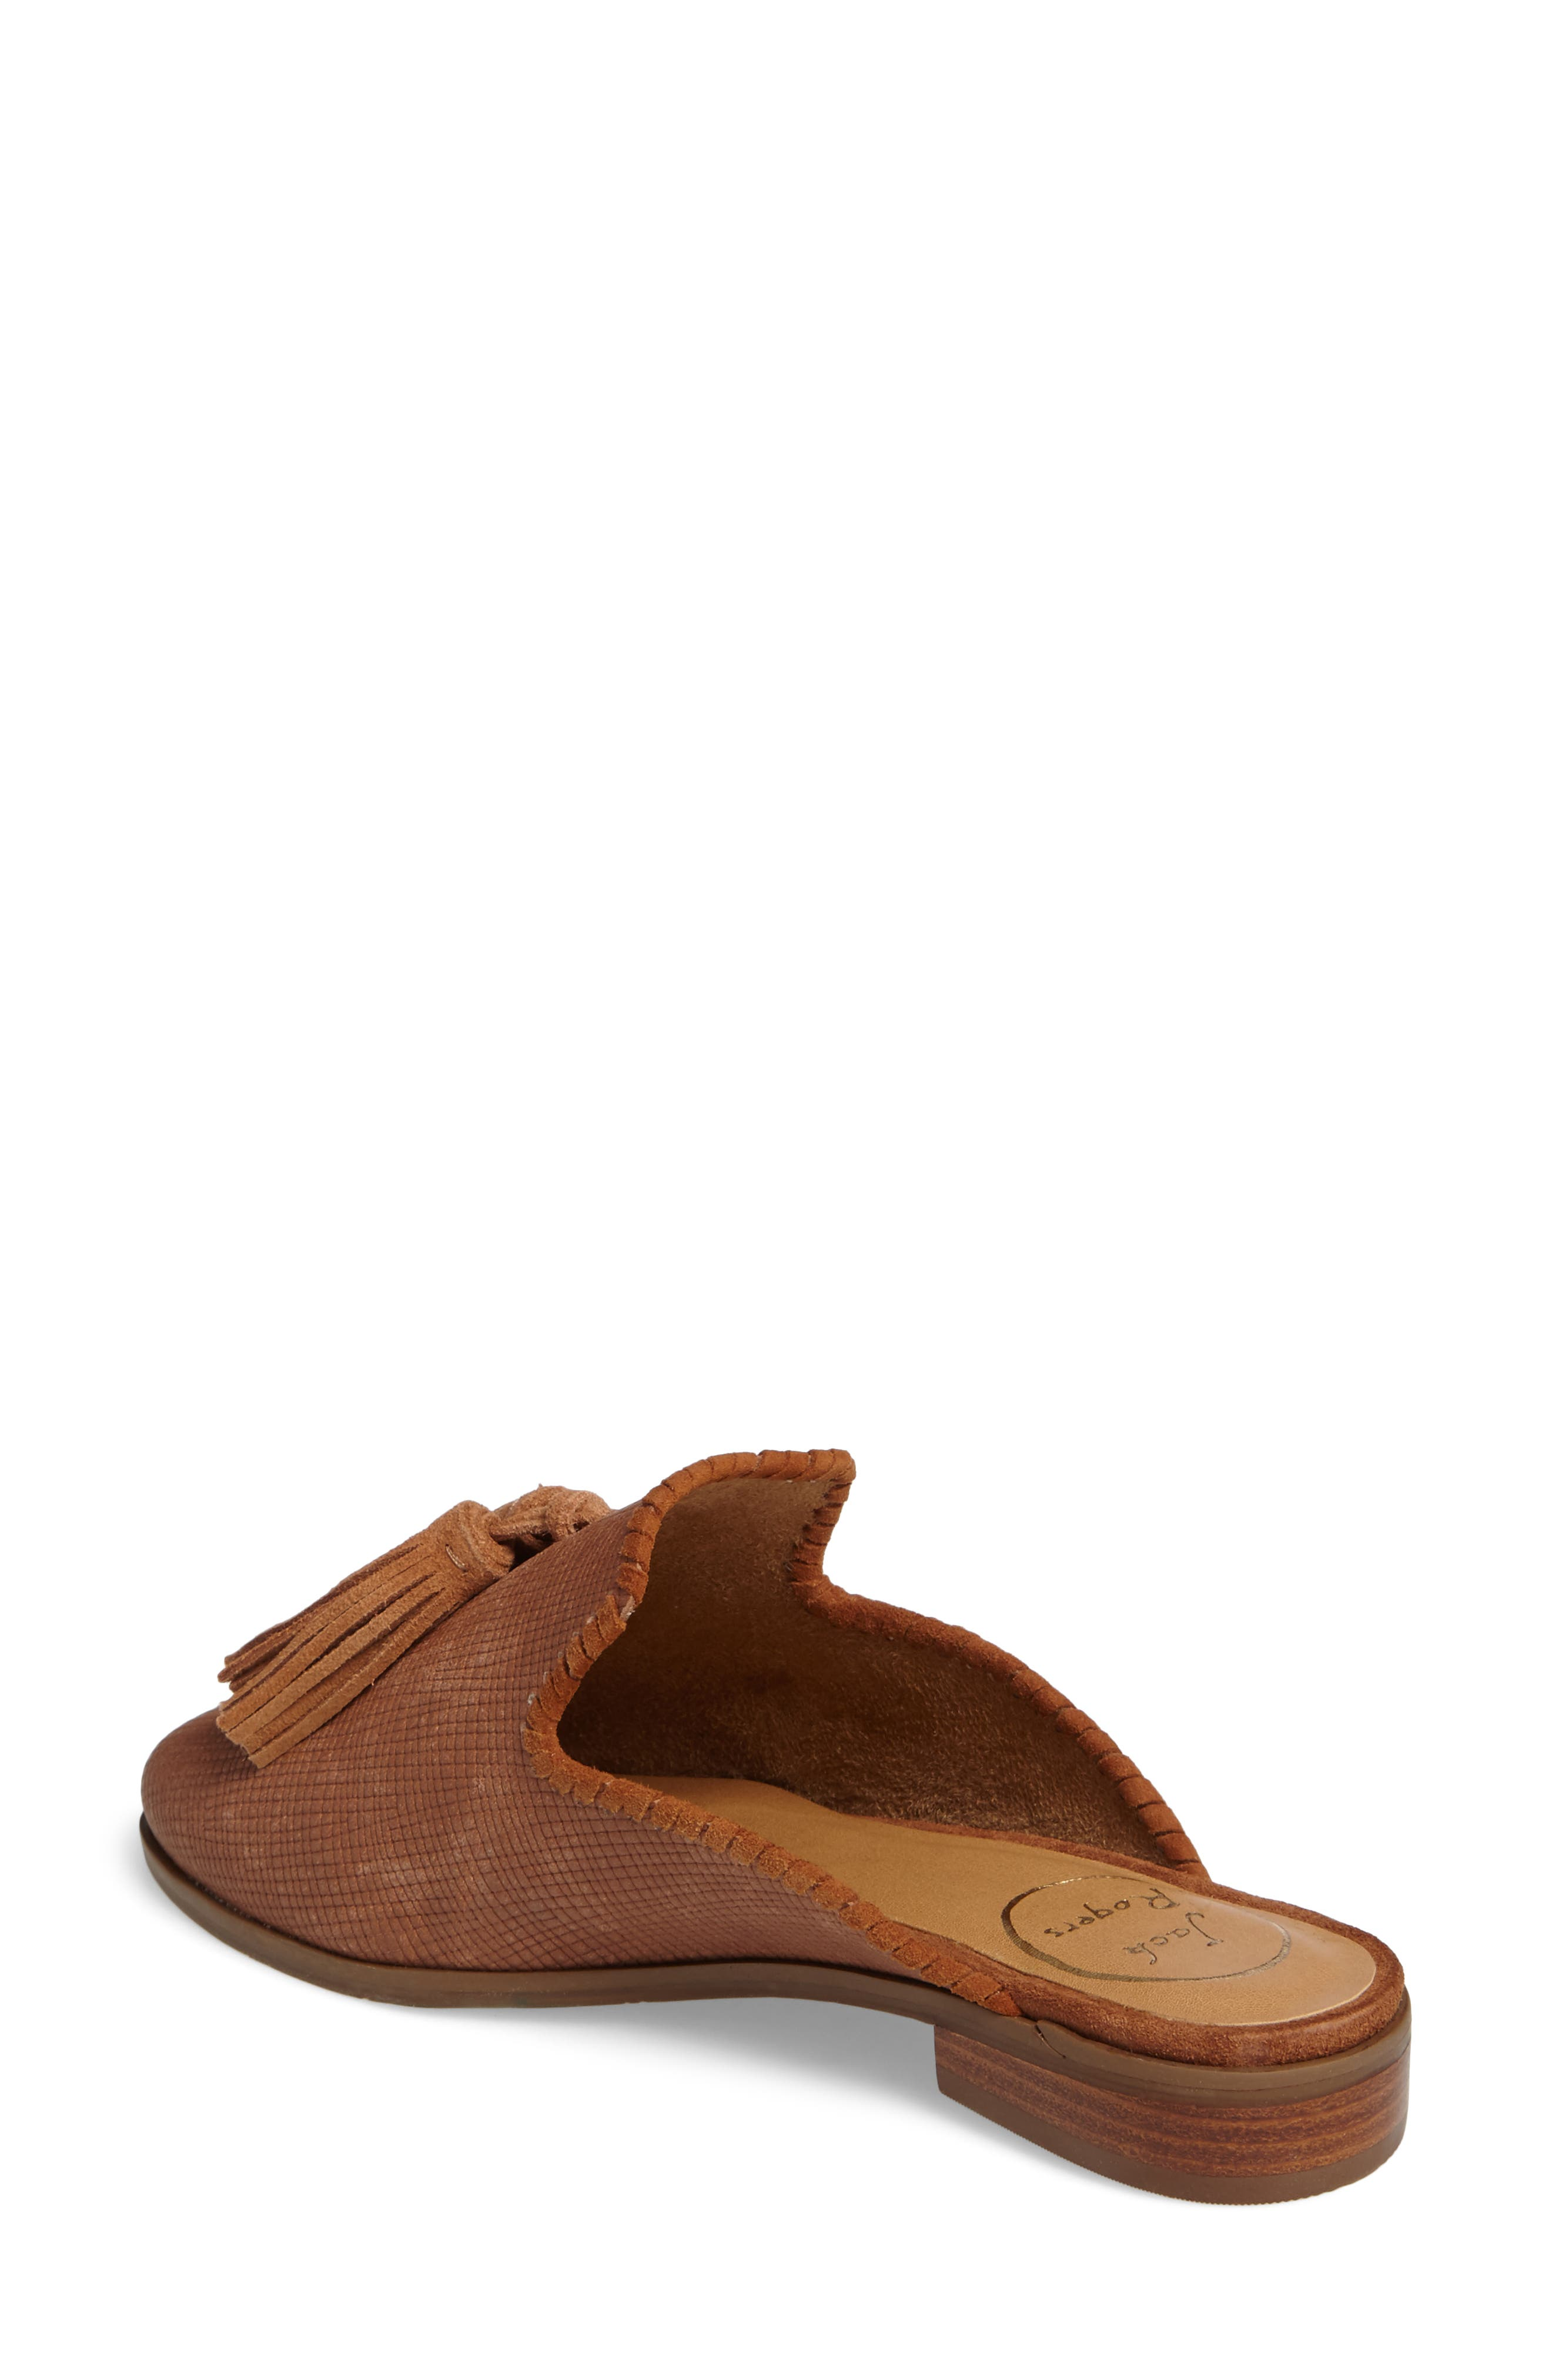 Delaney Tassel Mule,                             Alternate thumbnail 5, color,